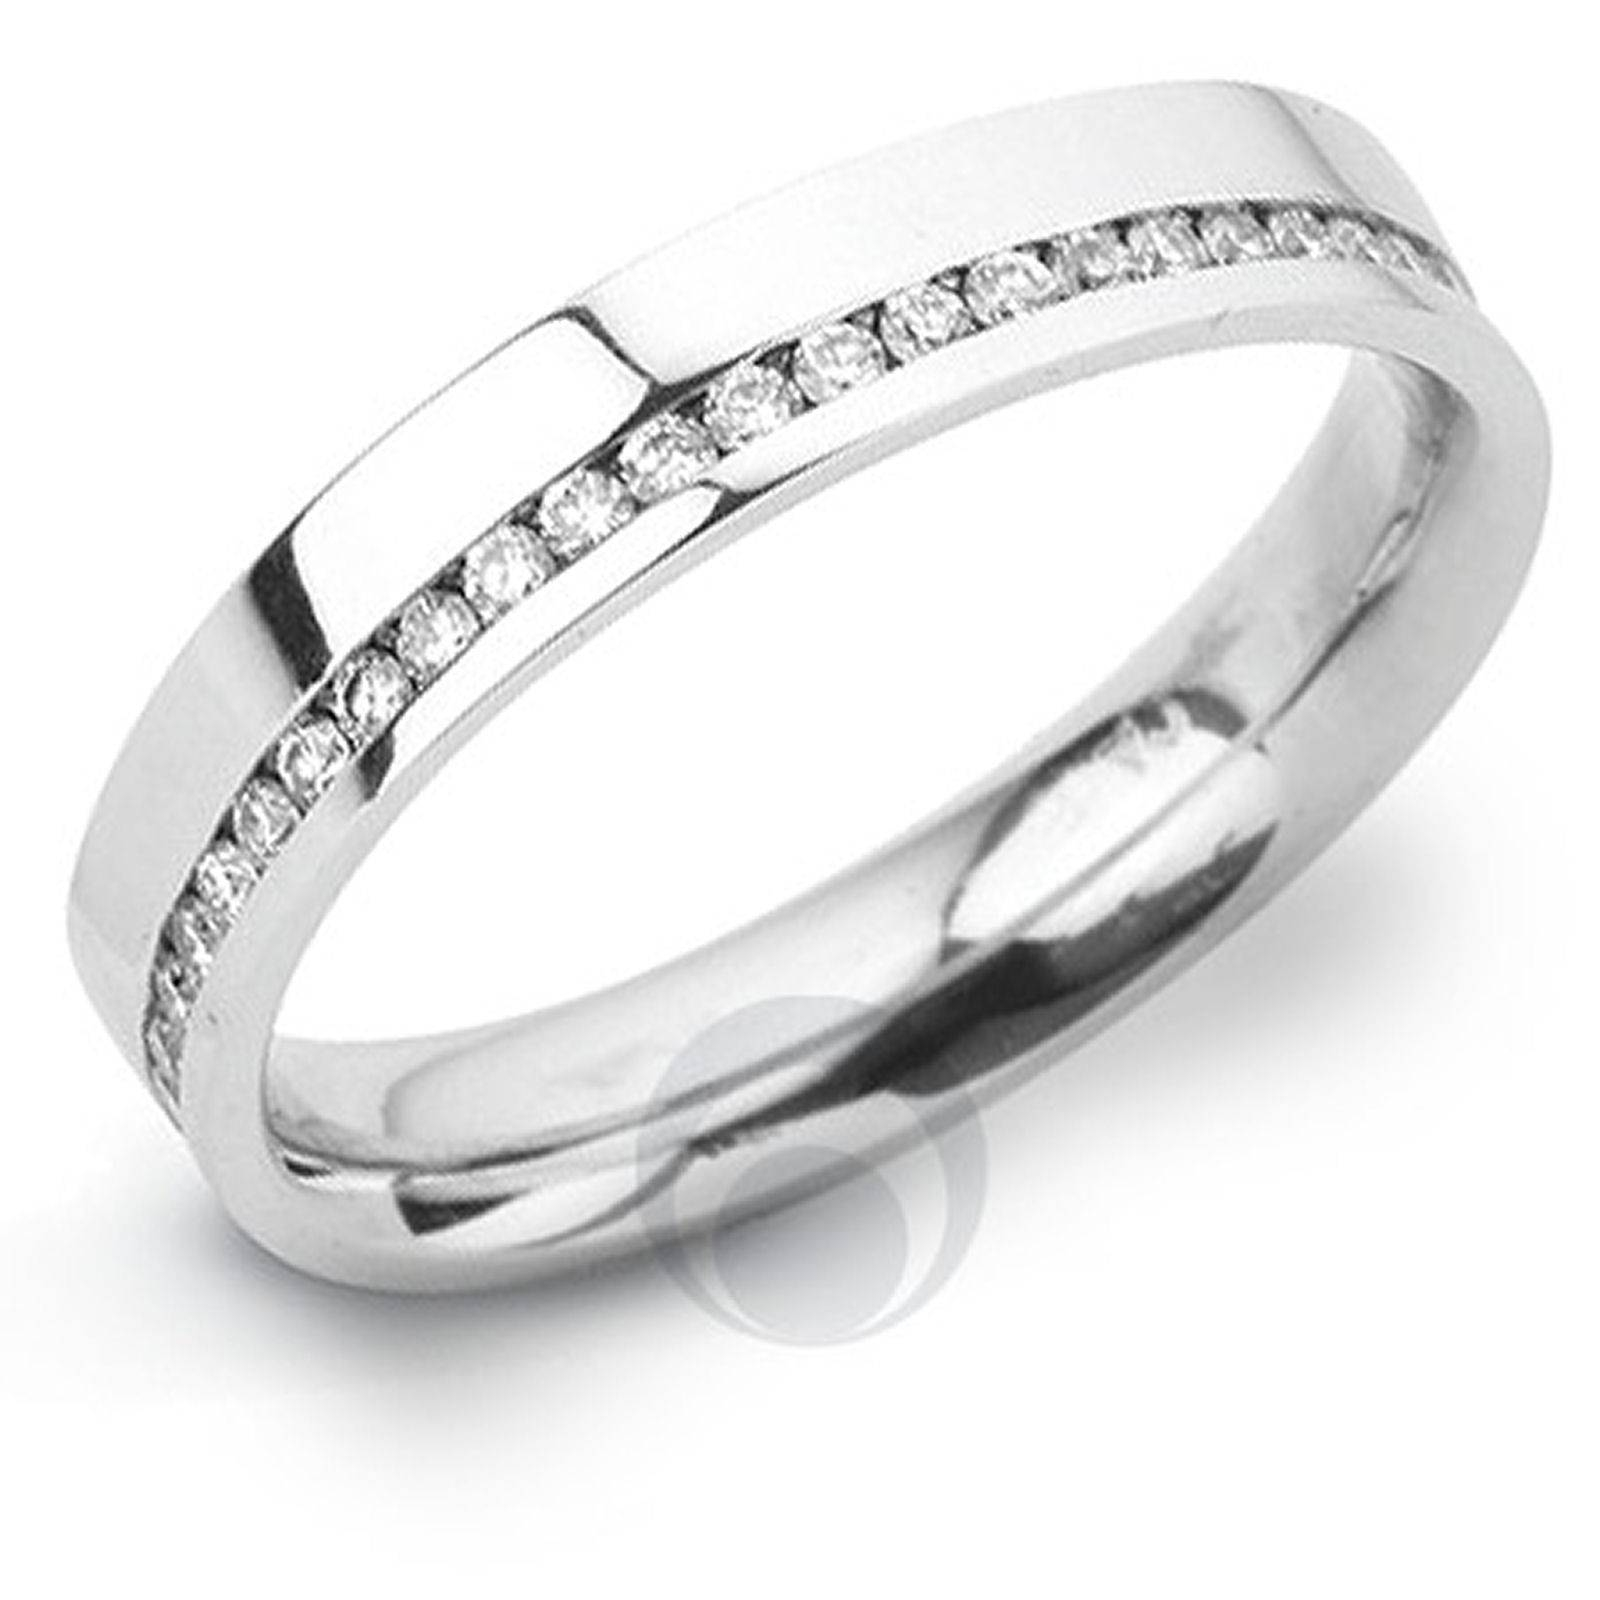 Channel Diamond Platinum Wedding Ring Wedding Dress From The Pertaining To 2018 Platinum Wedding Band With Diamonds (View 6 of 15)